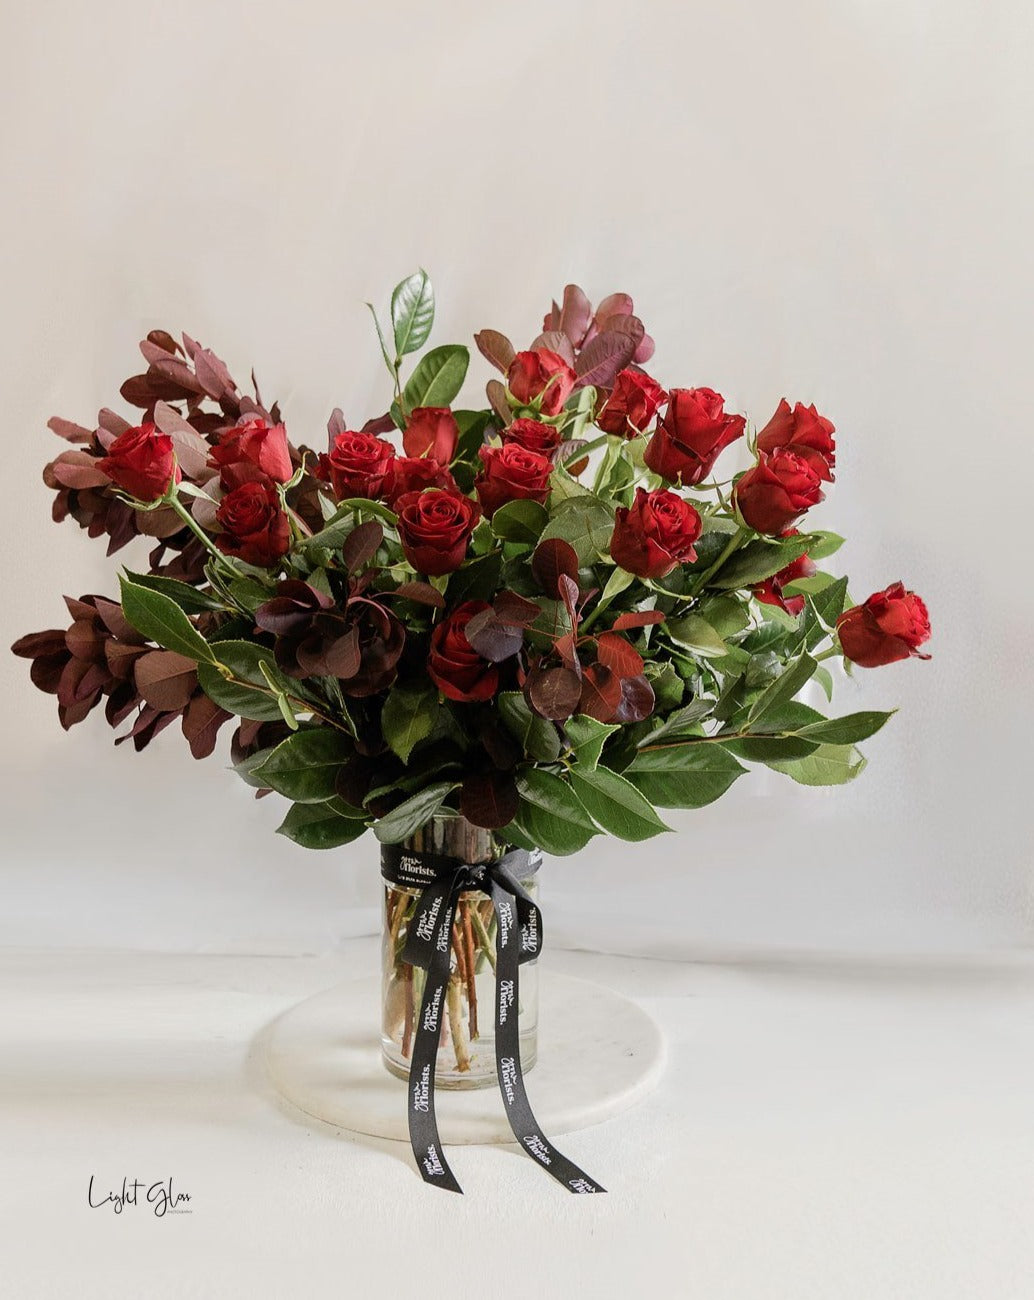 The classic red rose large vase